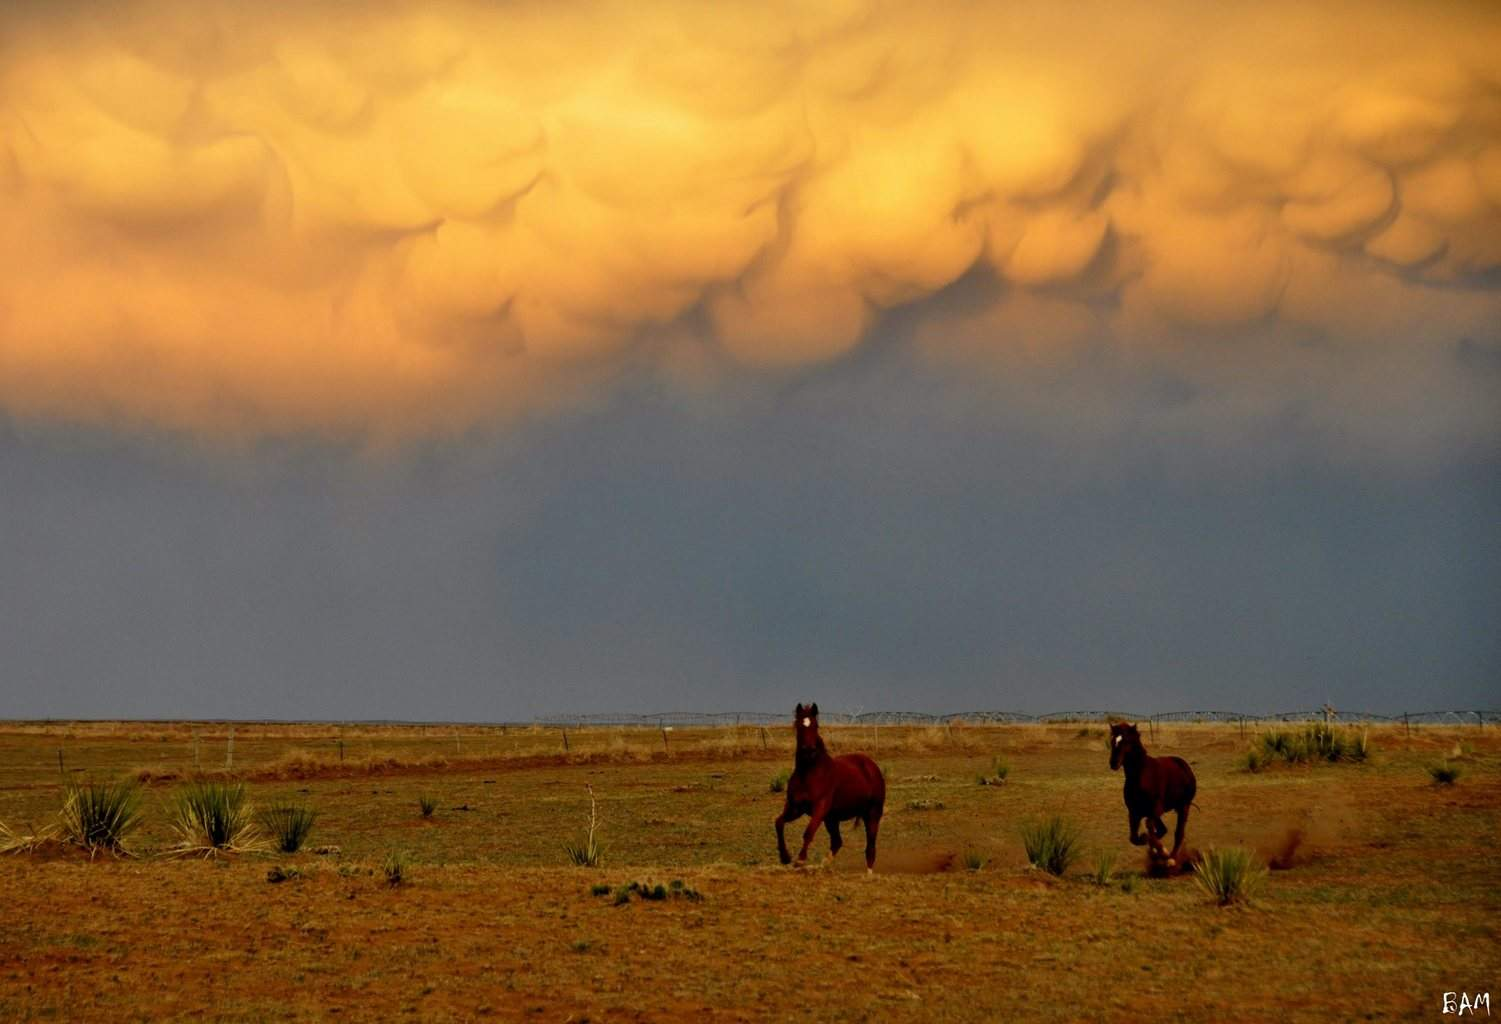 Texan Mammatus 8th May 2013 (Image 2) Another image of the sunset lit mammatus. While we had stopped to take photos, some curious horses bolted towards us. We thought they were going to jump the fence! lol